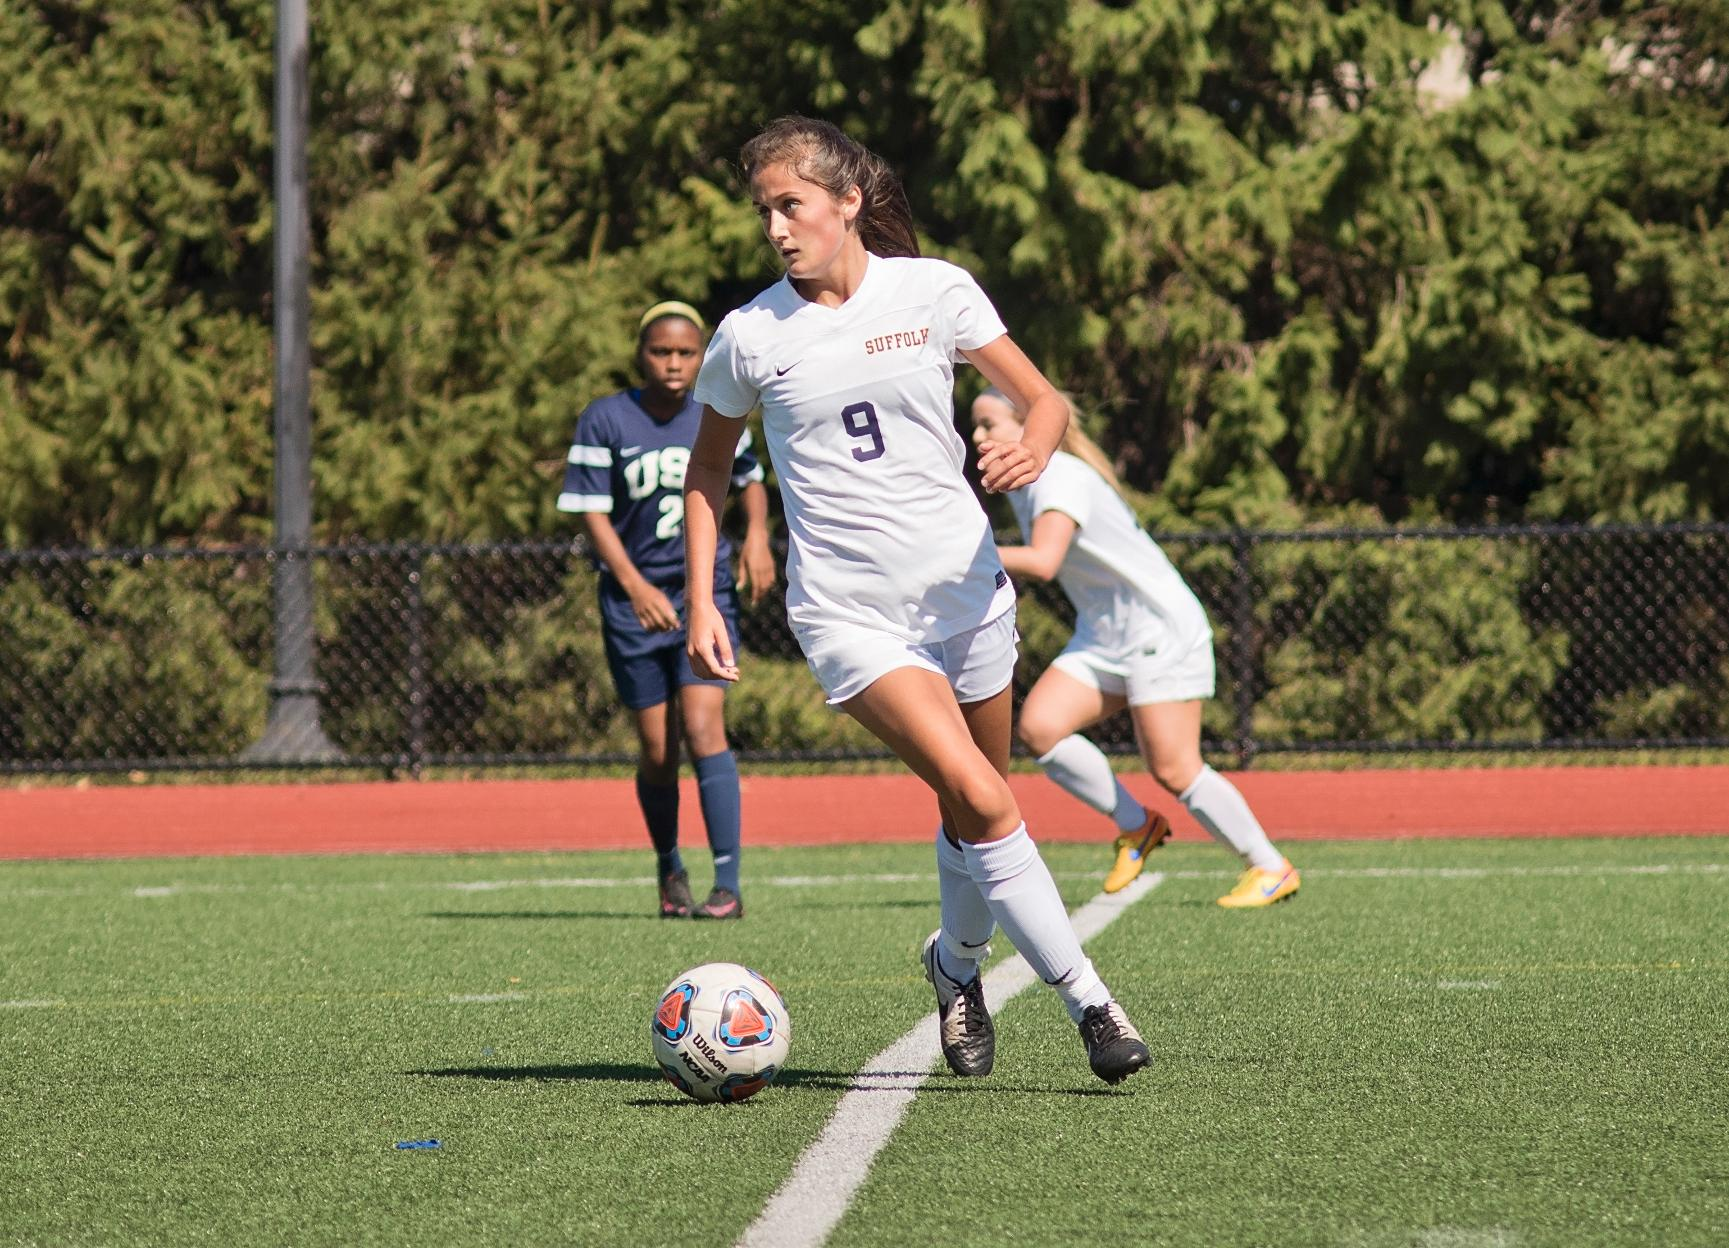 Whipple Sends Women's Soccer Past Curry in 1-0 Shutout